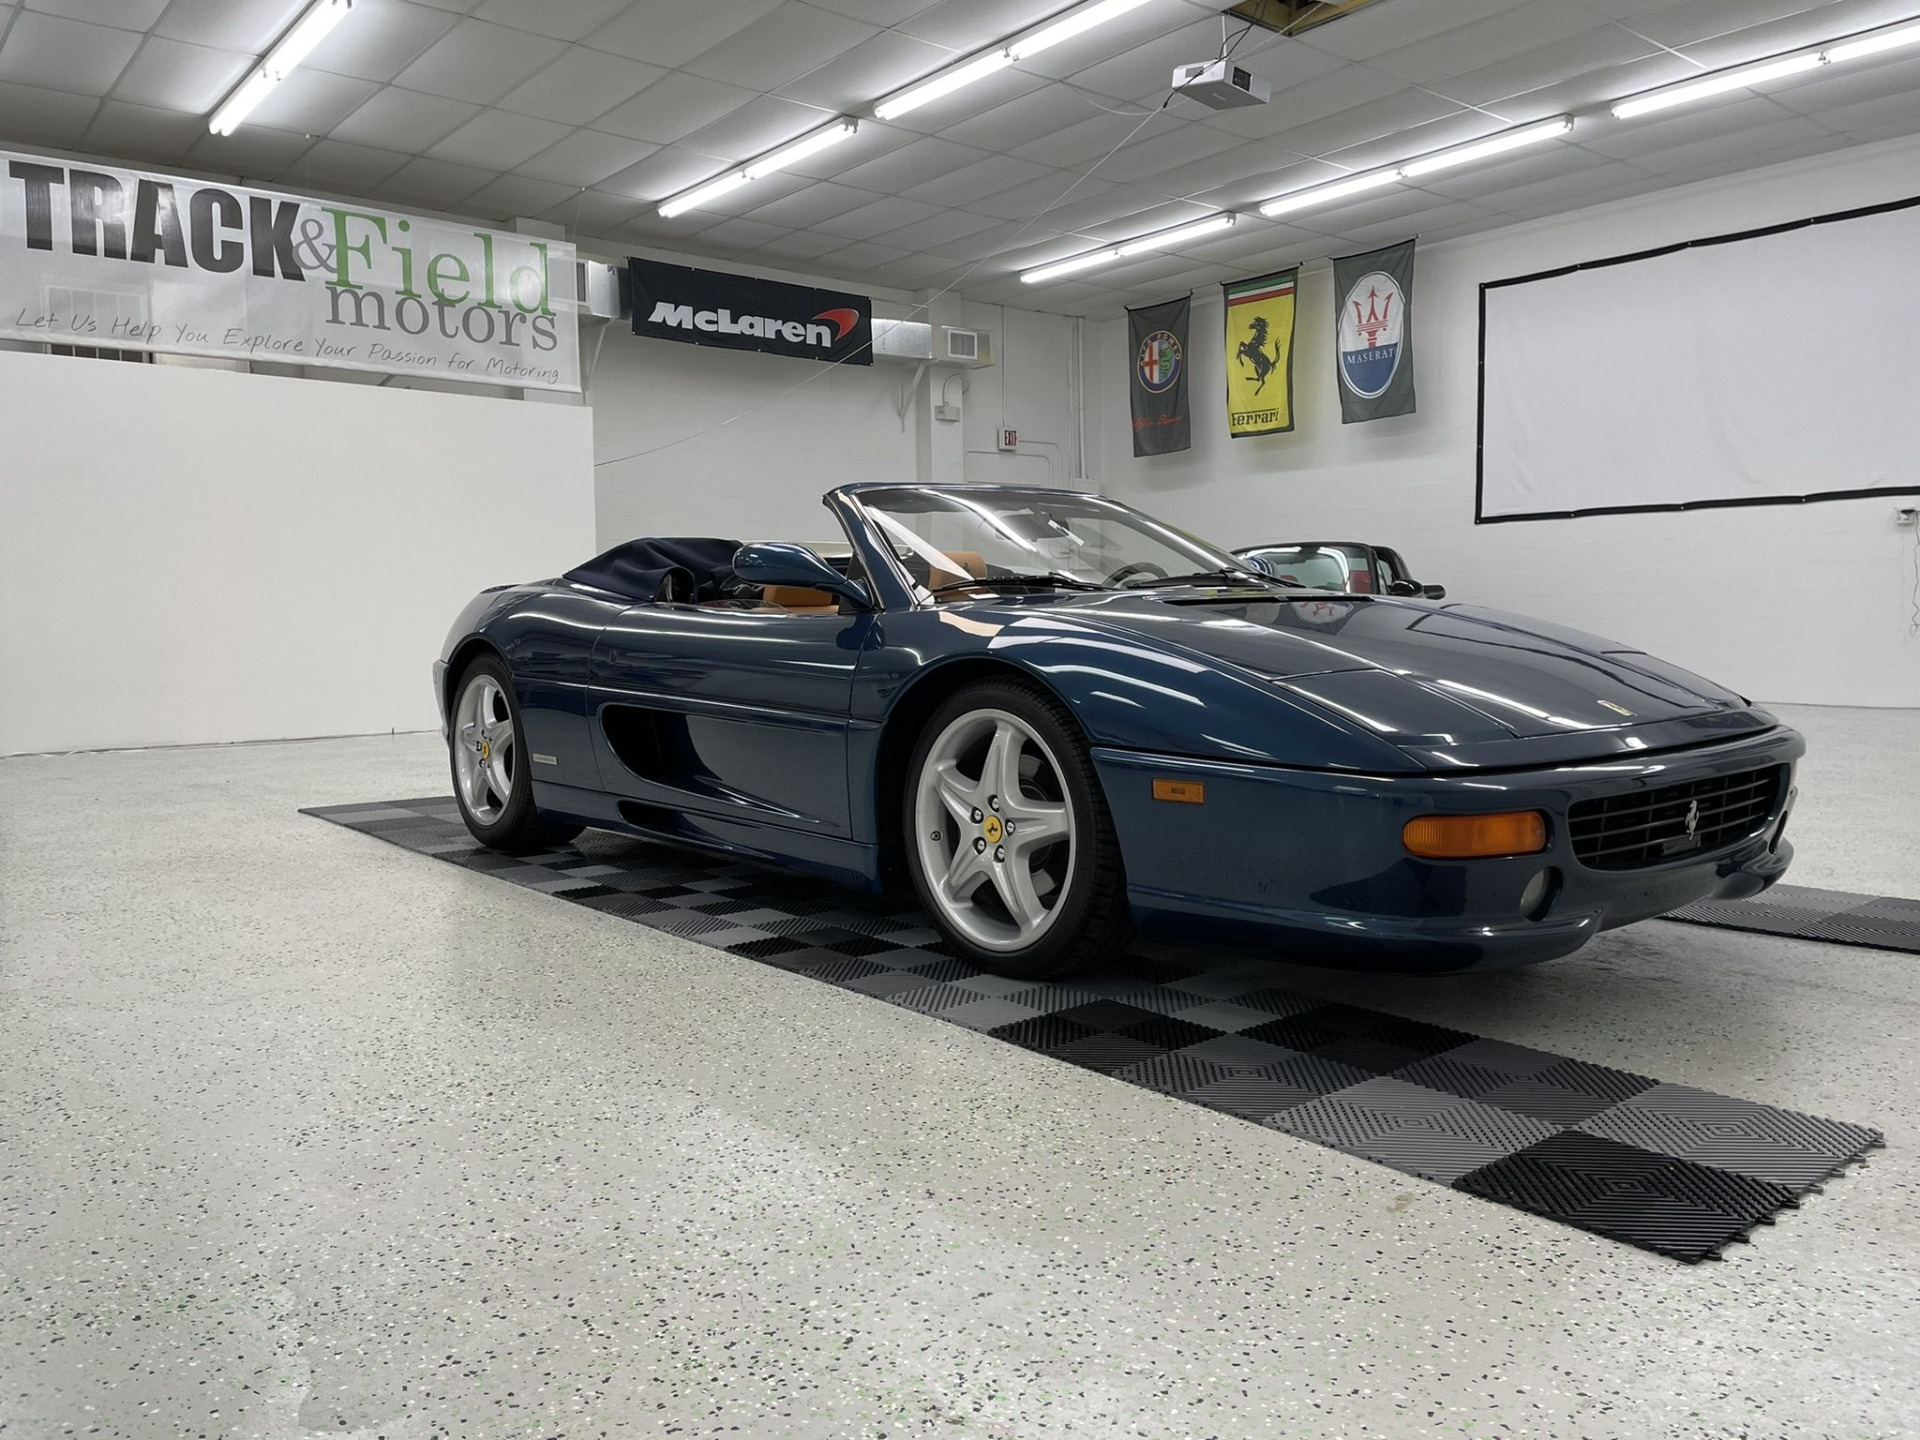 Used 1998 FERRARI 355 SPIDER for sale $72,497 at Track and Field Motors in Safety Harbor FL